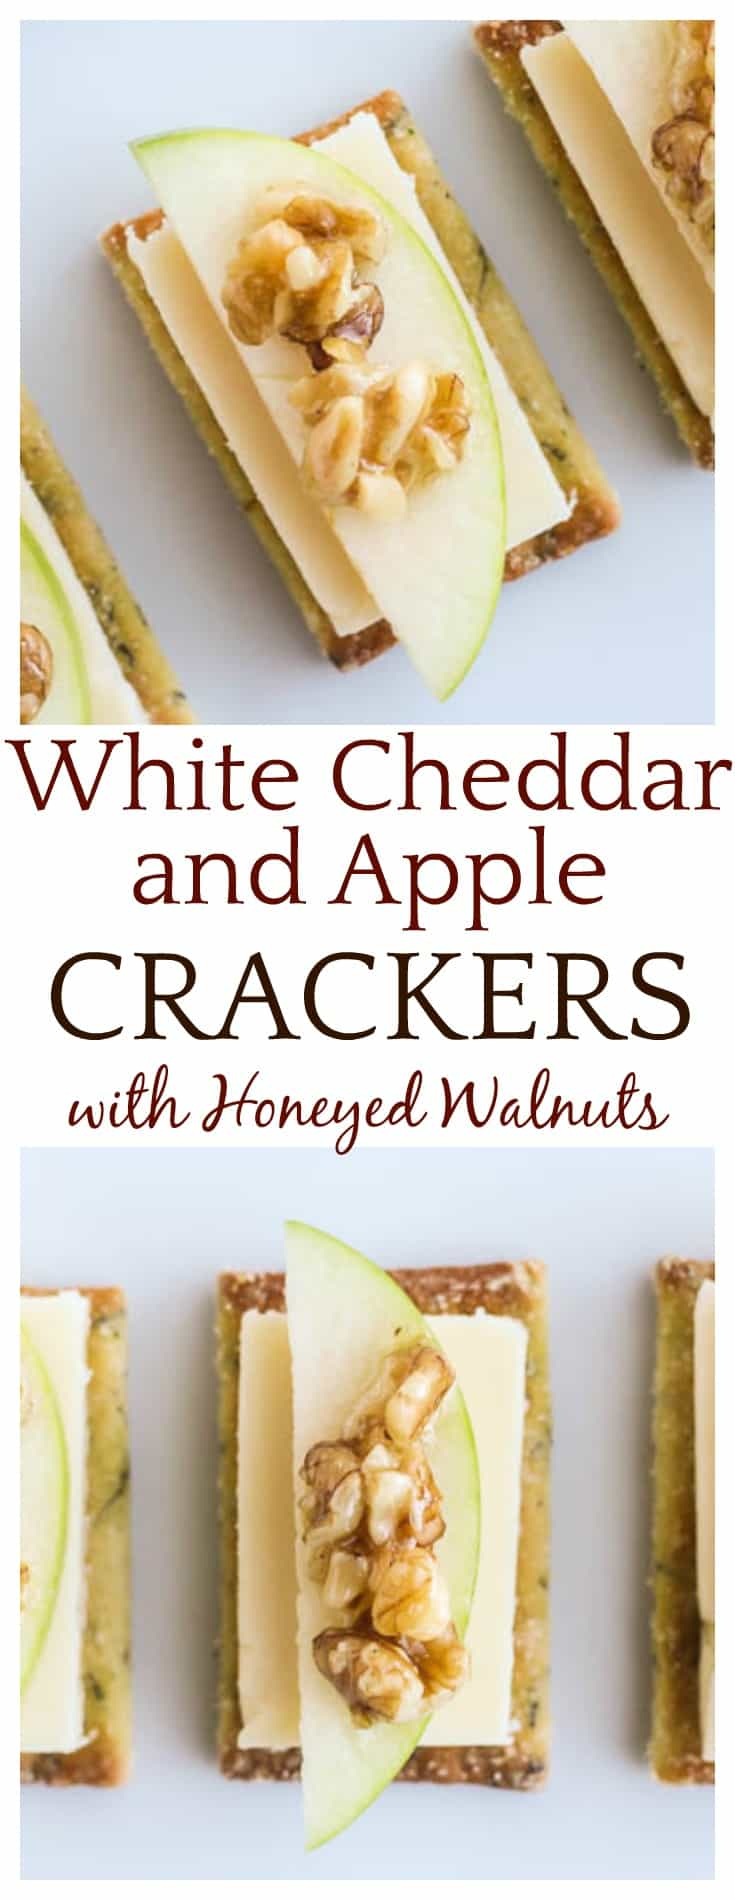 Try these simple White Cheddar Apple Crackers with Honeyed Walnuts for a quick, delicious appetizer that's great anytime of the year! #ad #CheeseAddiction #IC #appetizers #easyrecipes #dlb